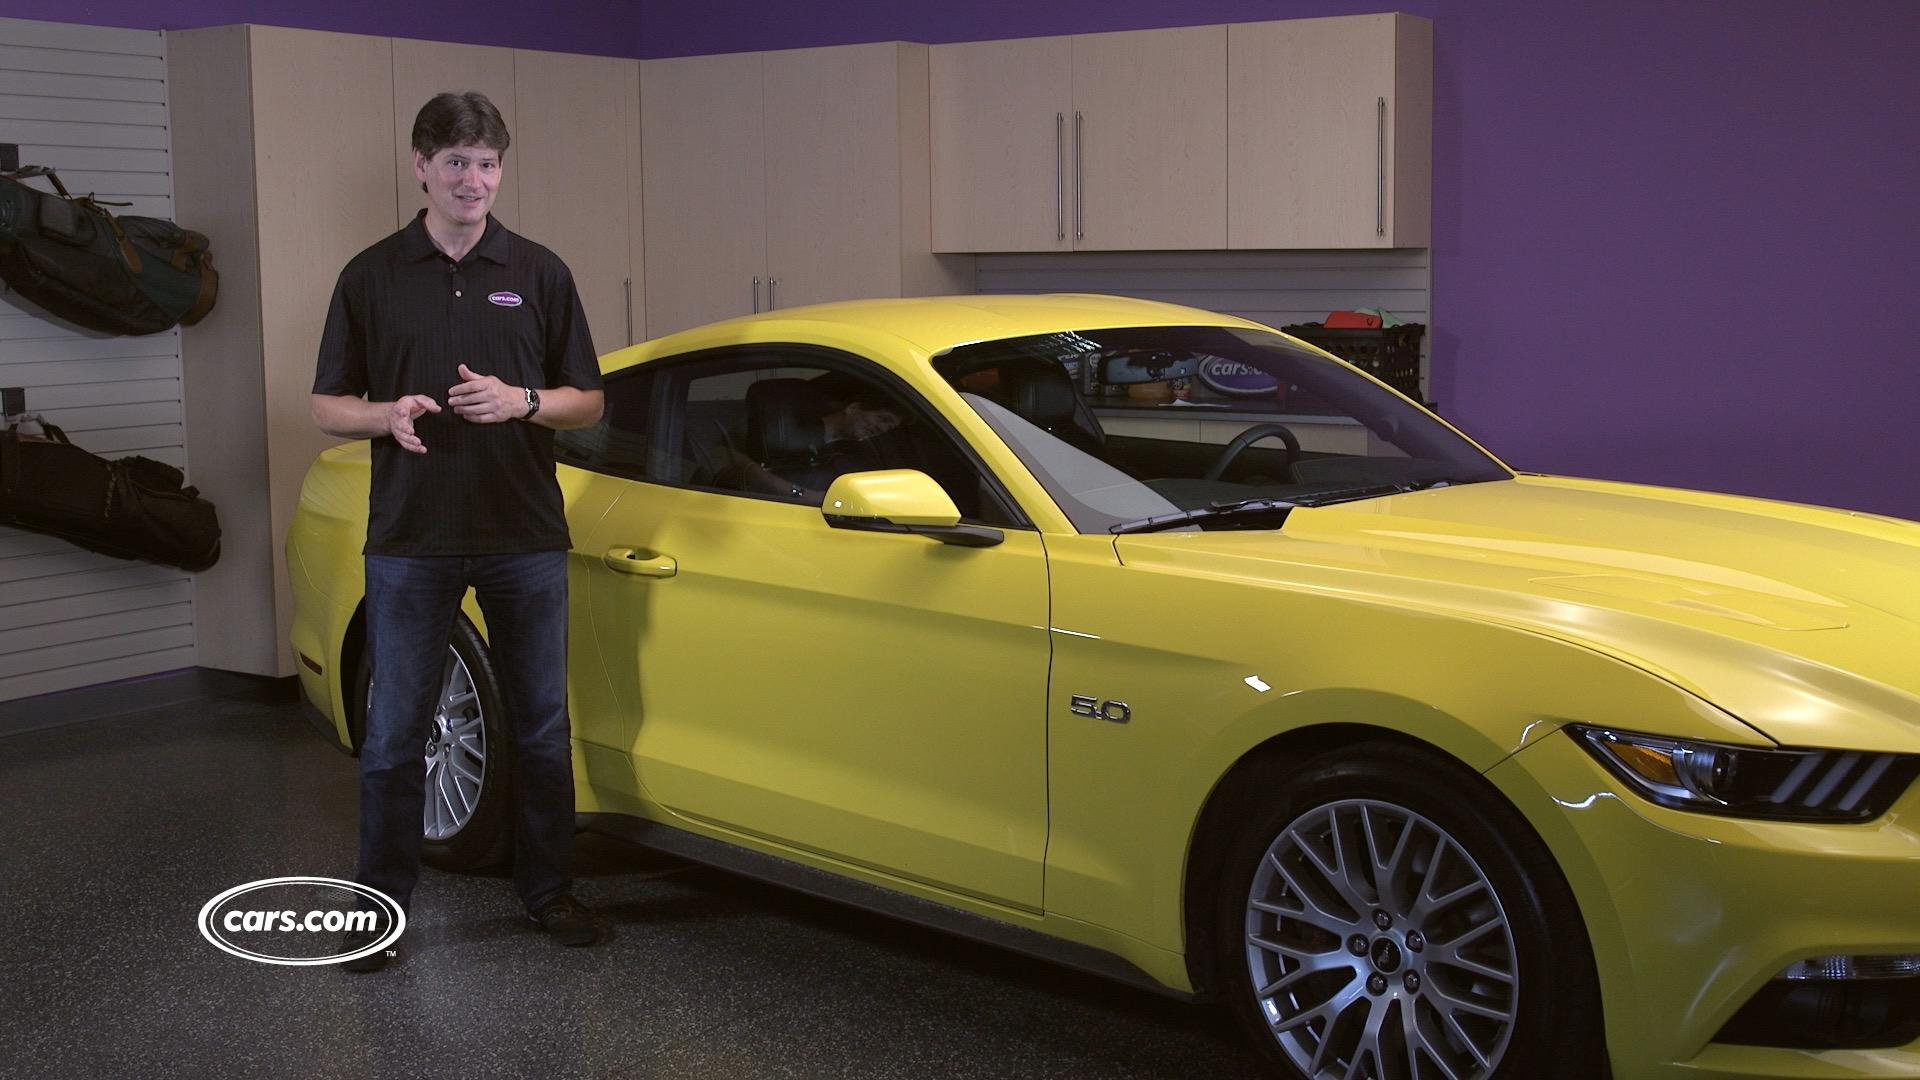 2016 Ford Mustang Expert Reviews Specs And Photos 2000 Speaker